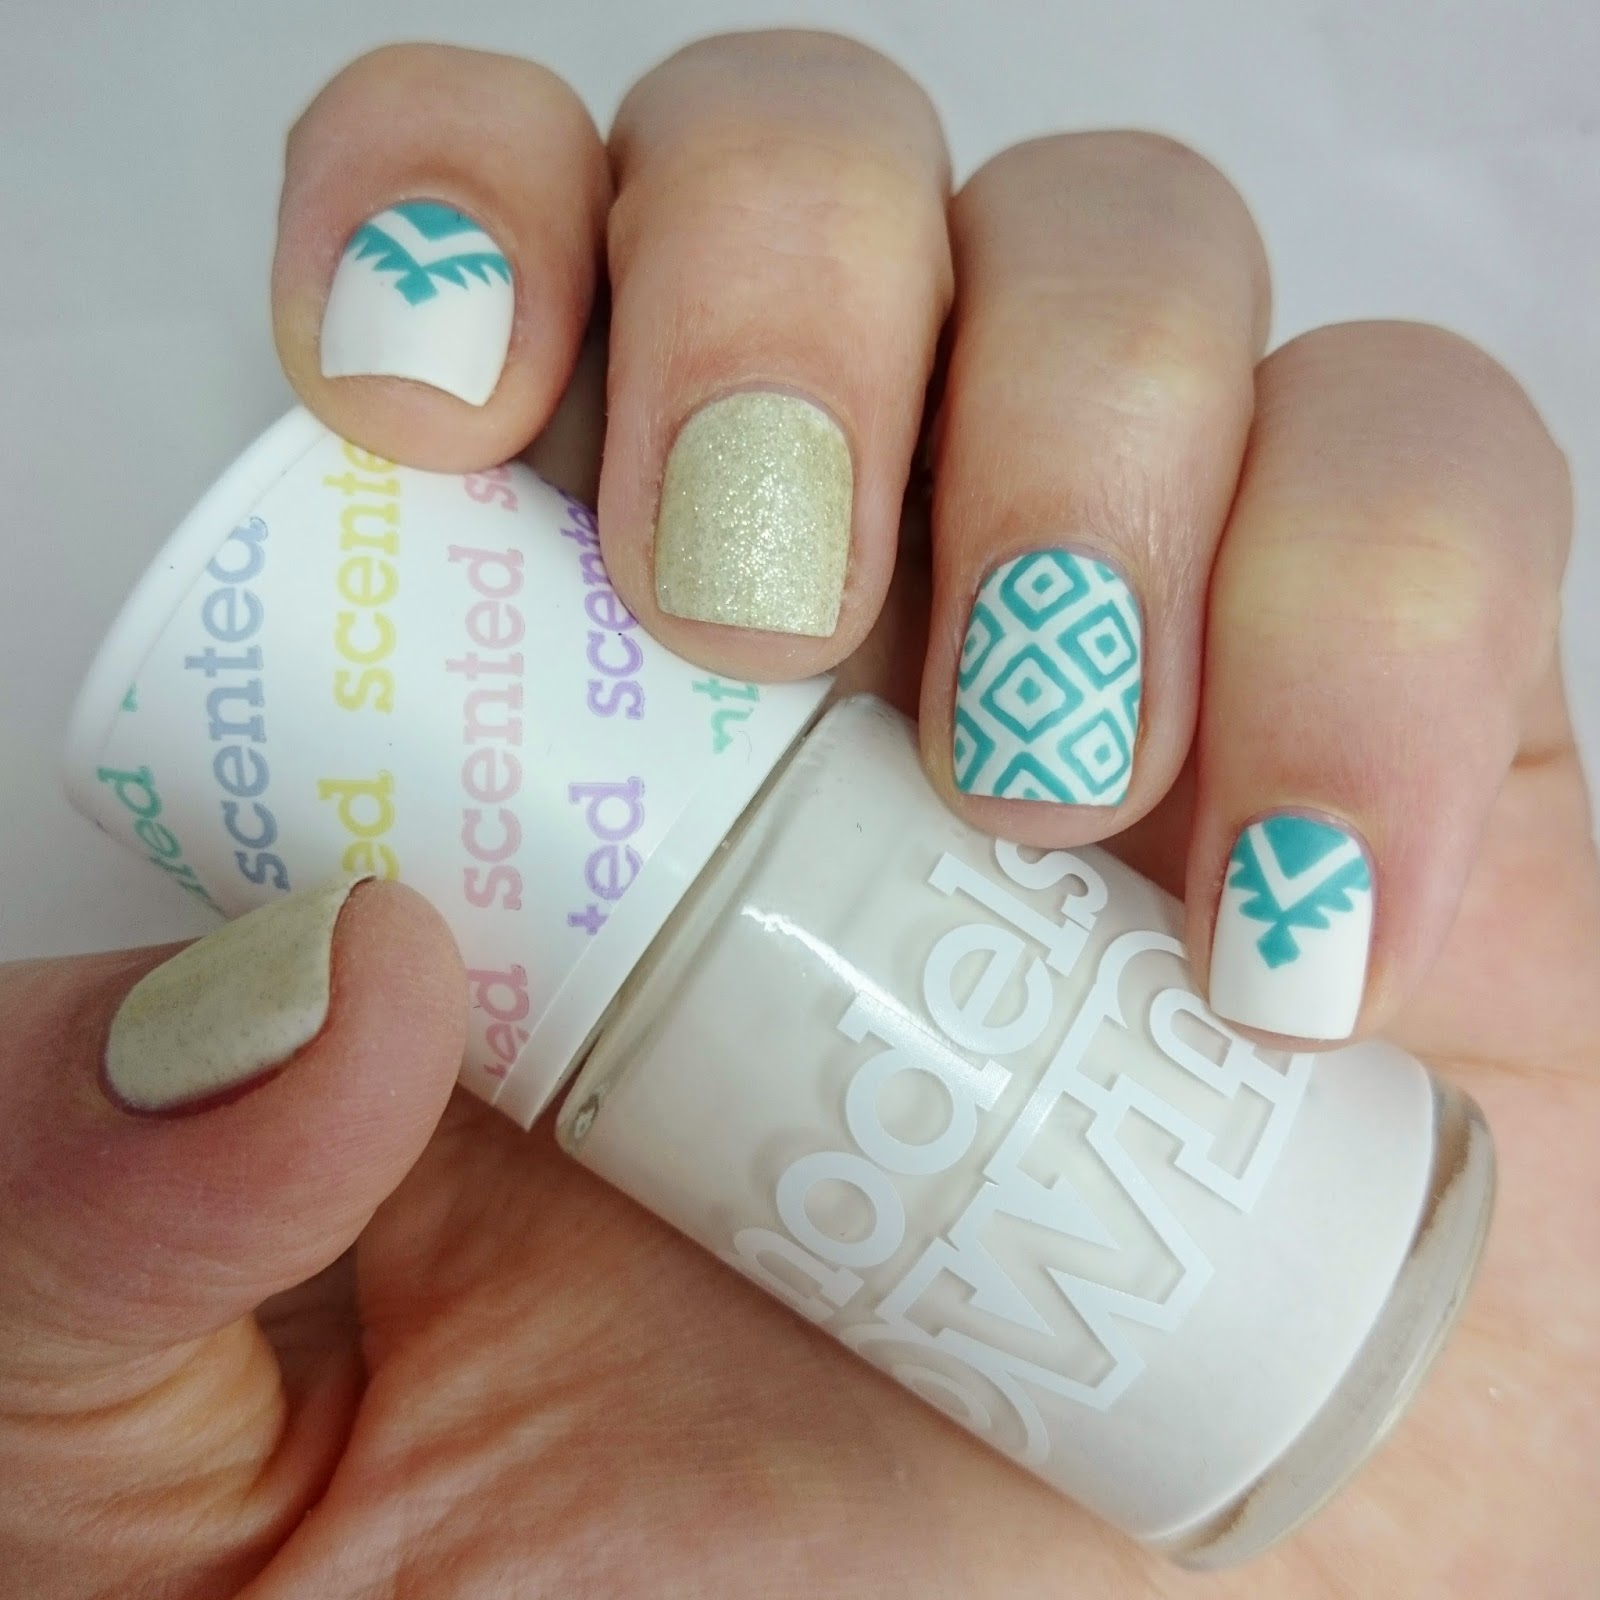 sophia webster inspired nail art